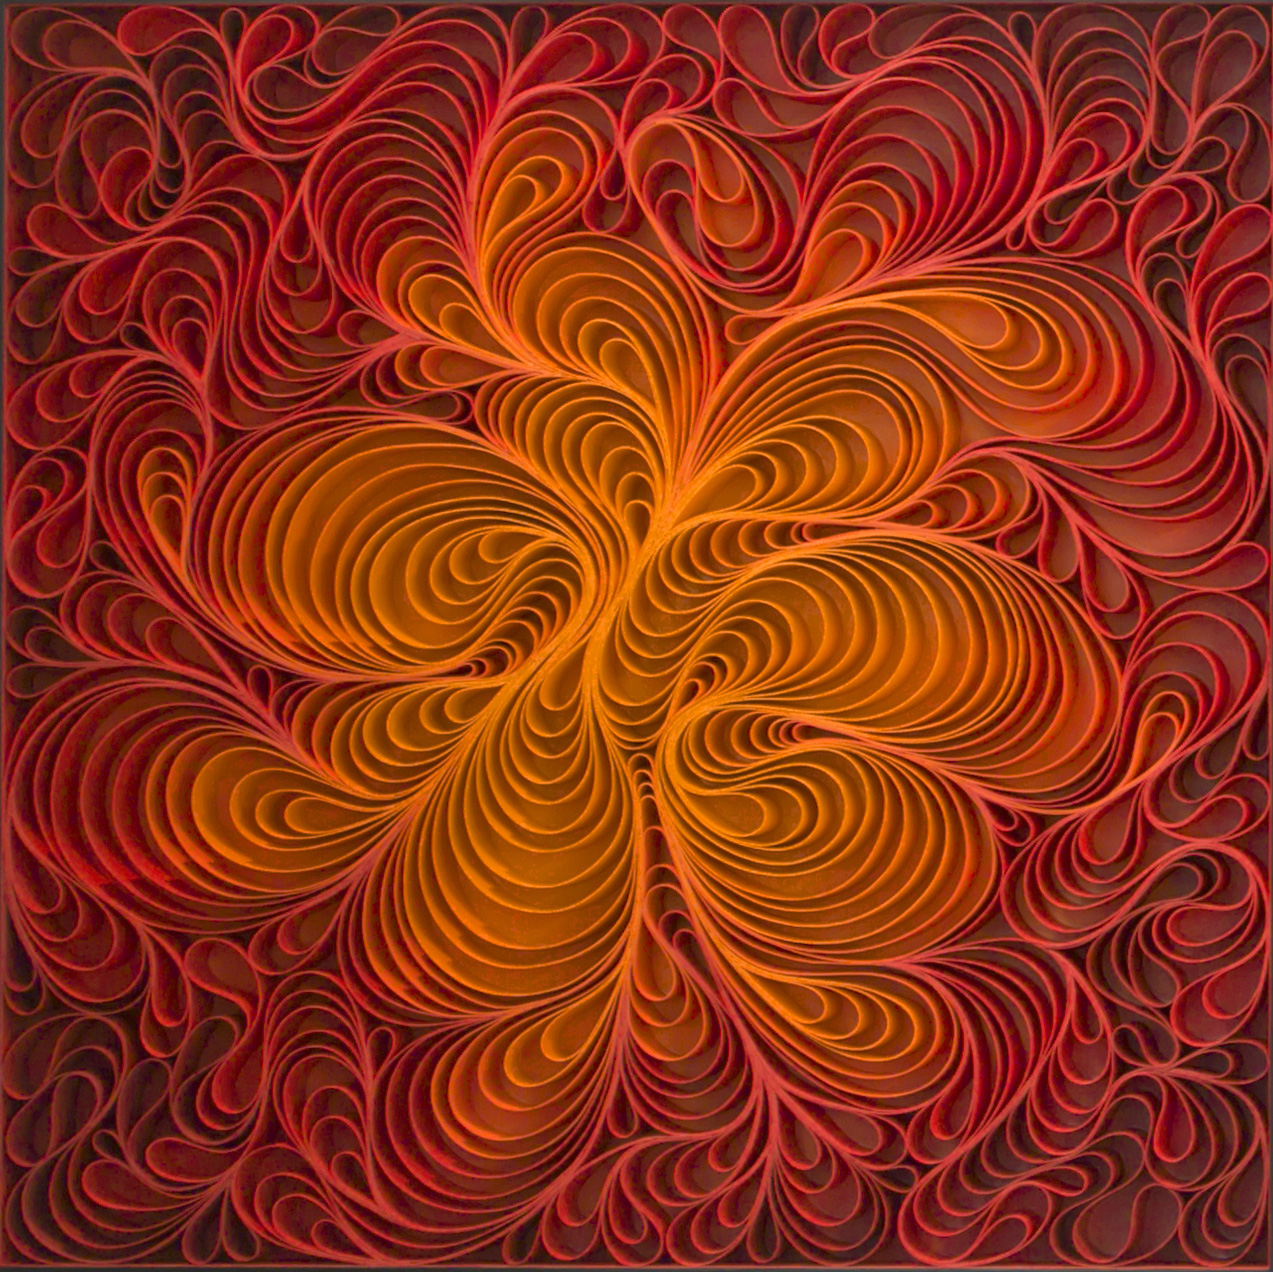 Stallman, 'Wildfire I', 2016, Sculpted canvas & acrylic on panel, 36h x 36w in.